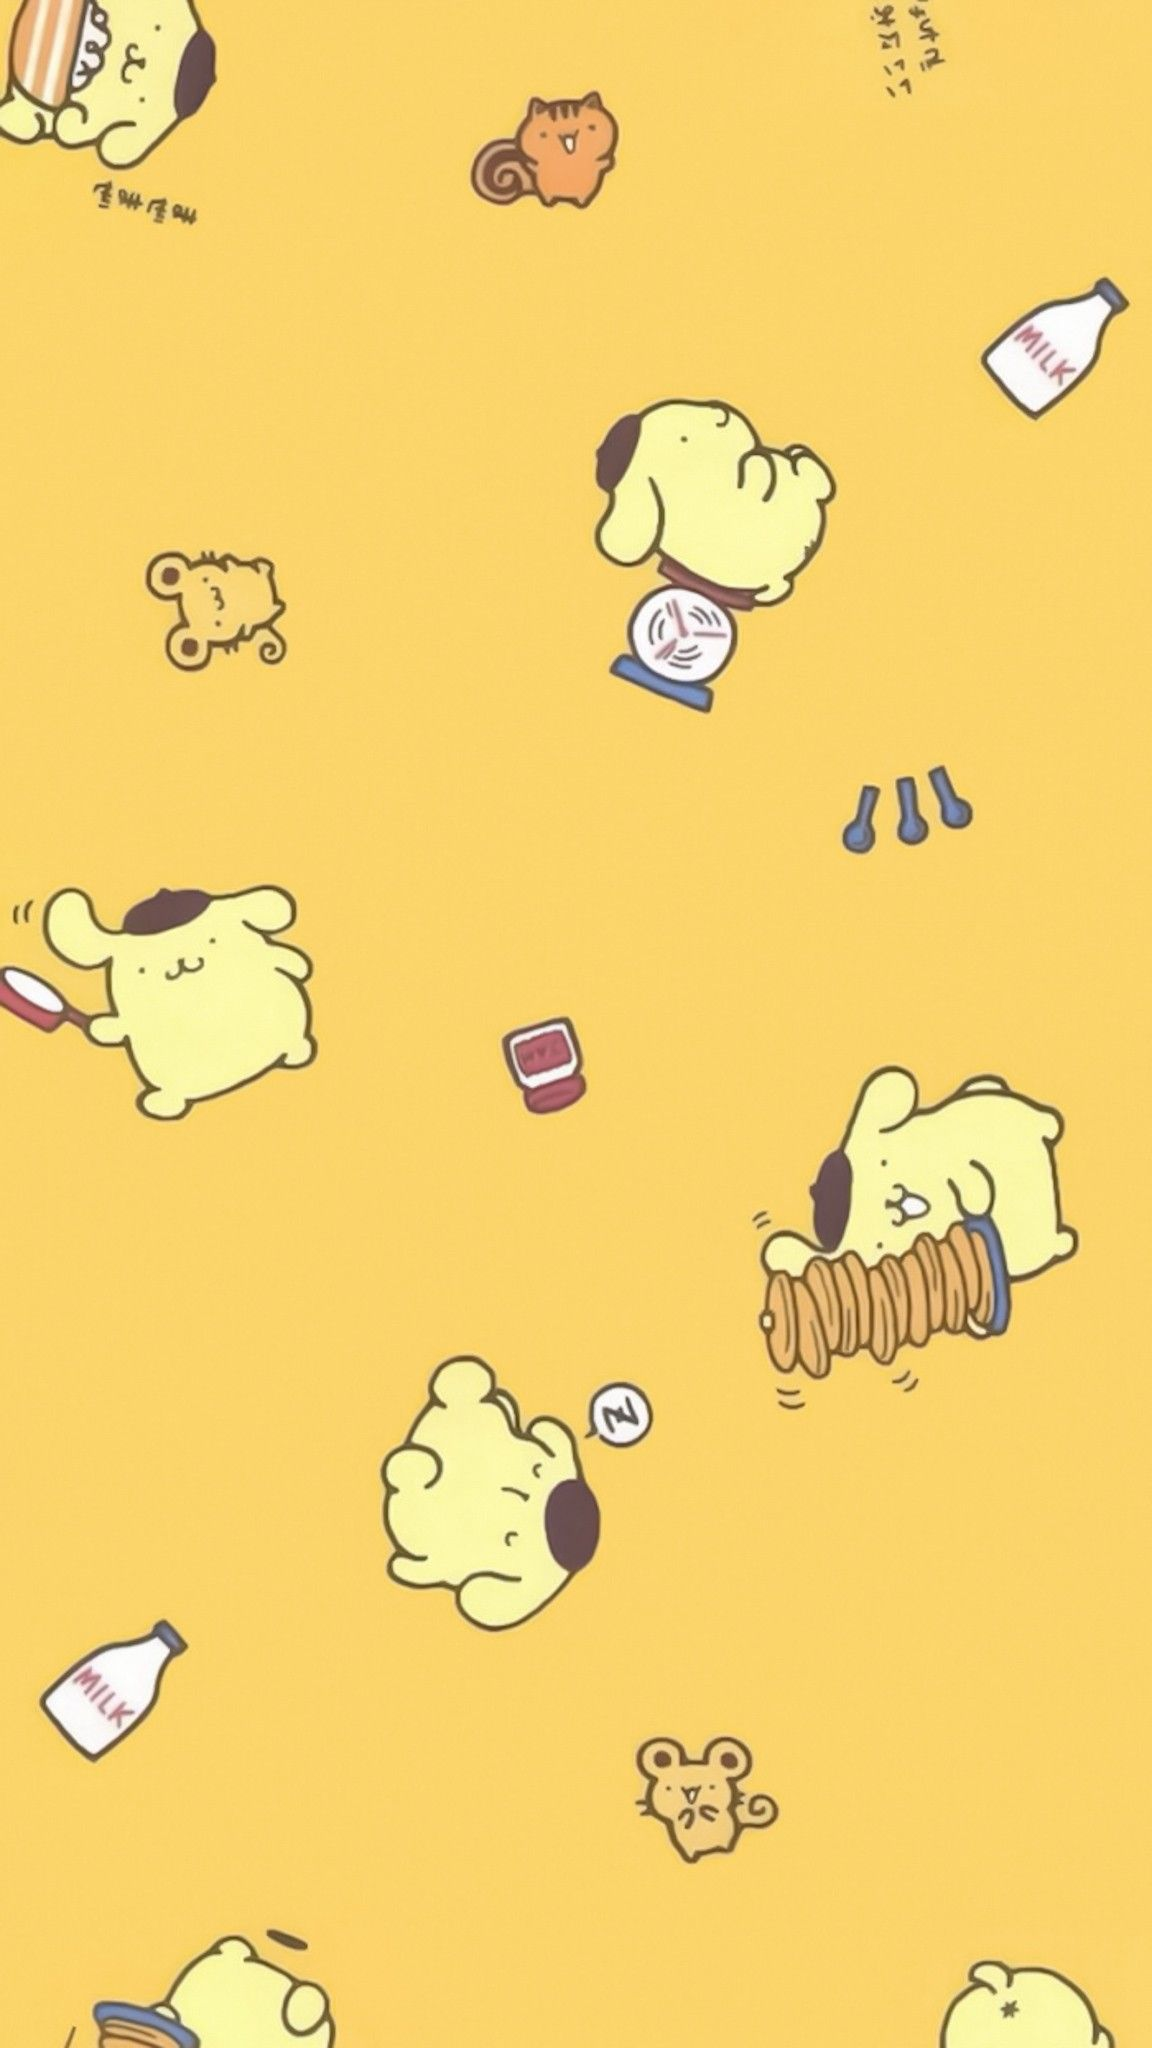 Pin By Aekkalisa On Pompompurin Bg Yellow Wallpaper Sanrio Characters Cute Wallpapers